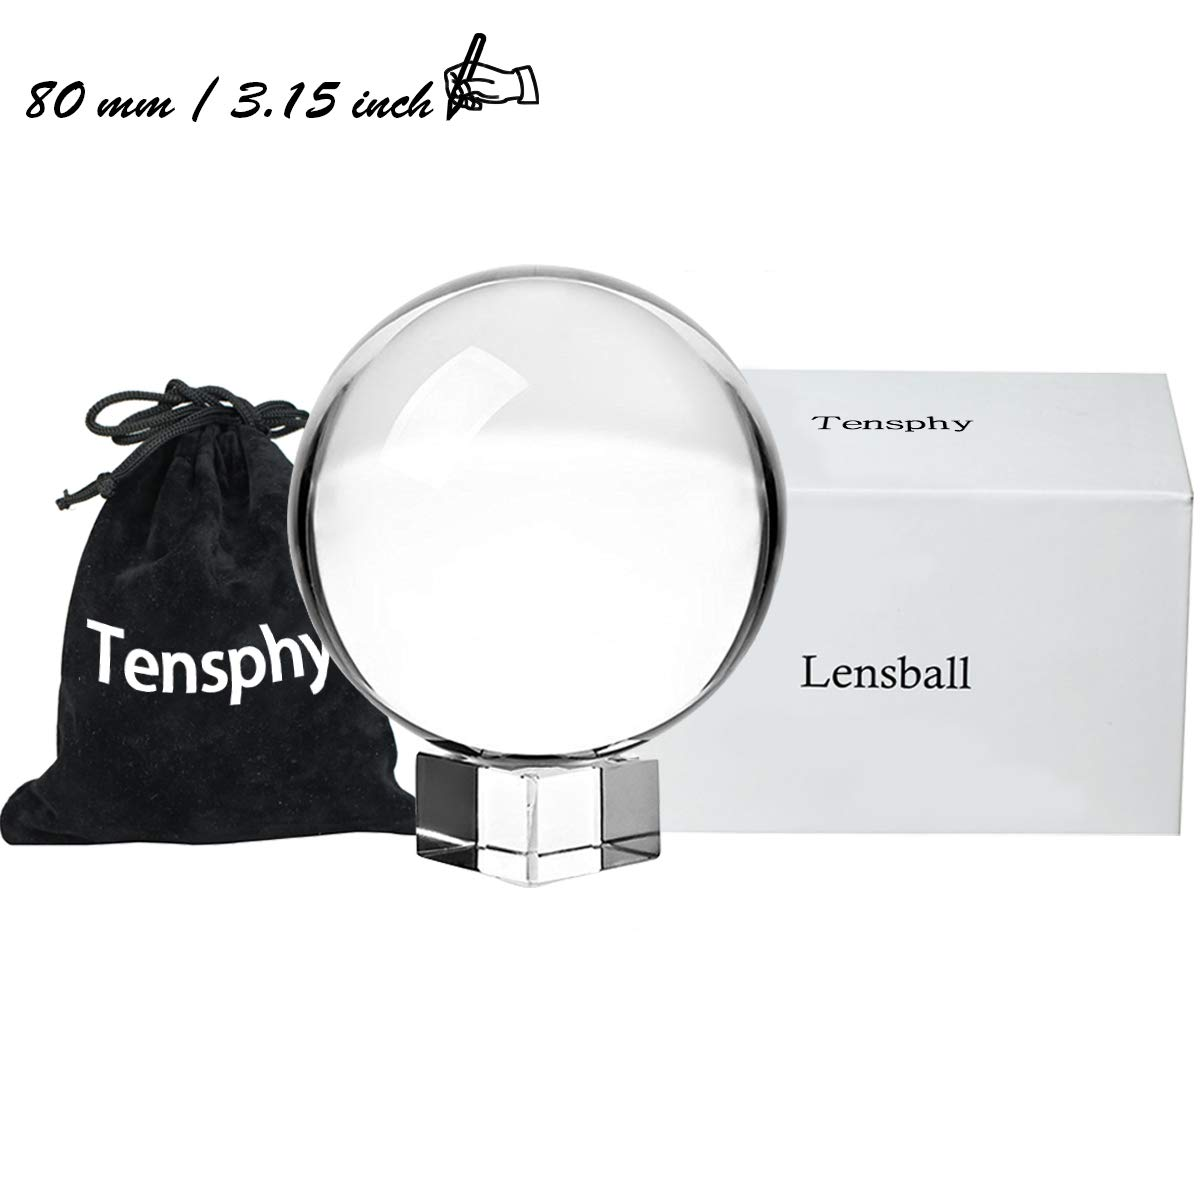 Tensphy Photography Lensball Pro K9 Crystal Ball with Stand Clear Art Decor Glass Photo Sphere Ball for Photography Accessories Props (80 mm/ 3.19 inch)